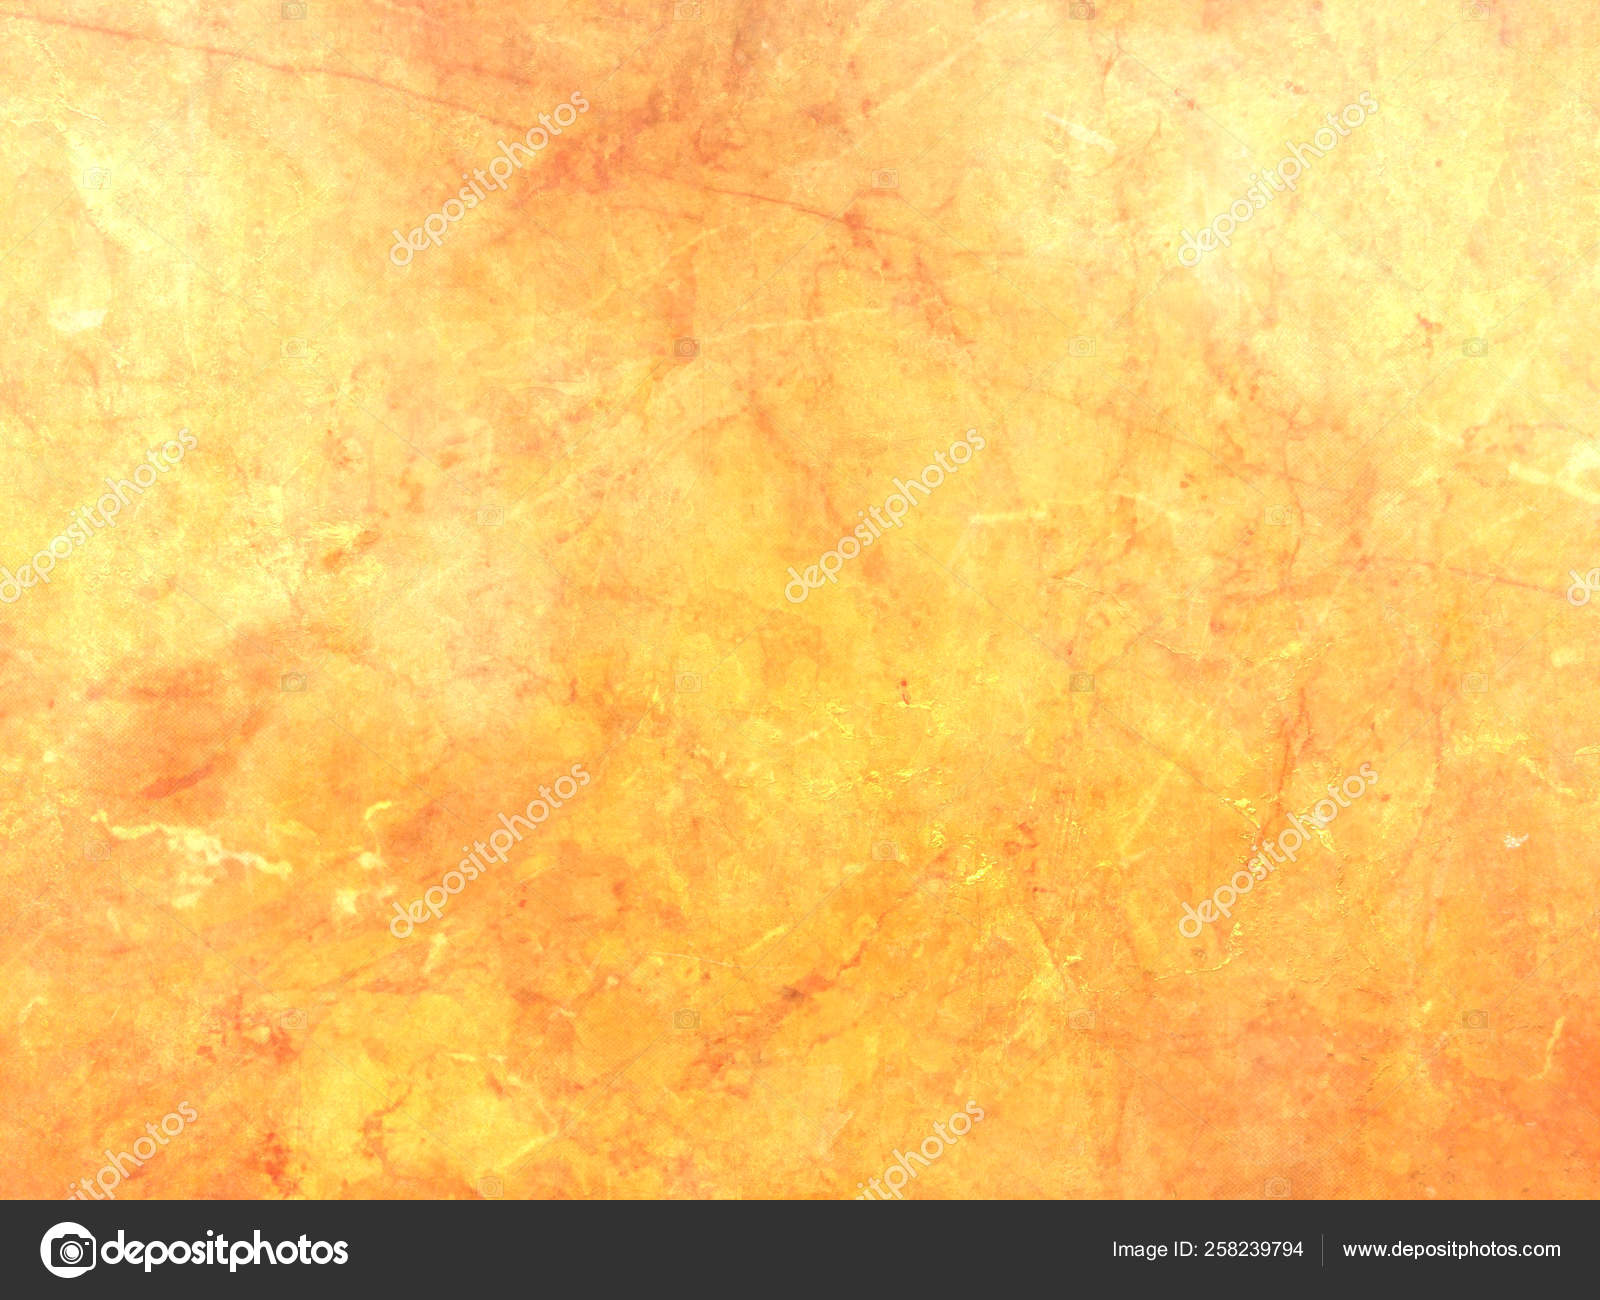 Background Orange Yellow Marble Orange Yellow Background With Soft Marble Texture Abstract Polished Stone Plate Stock Photo C Doozie 258239794